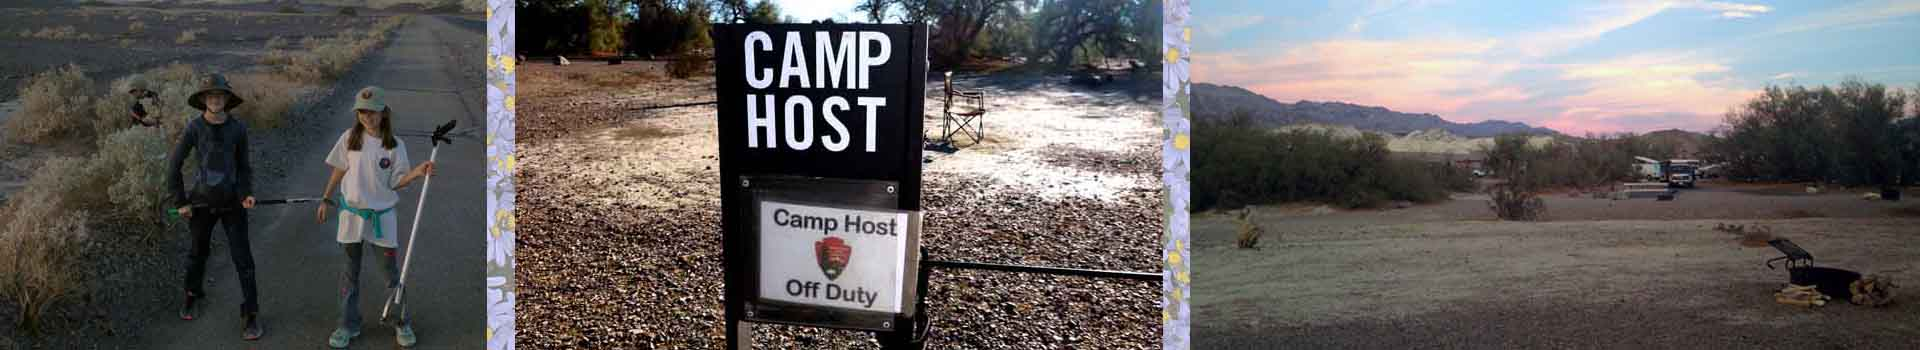 Camp Hosting Pros and Cons Banner